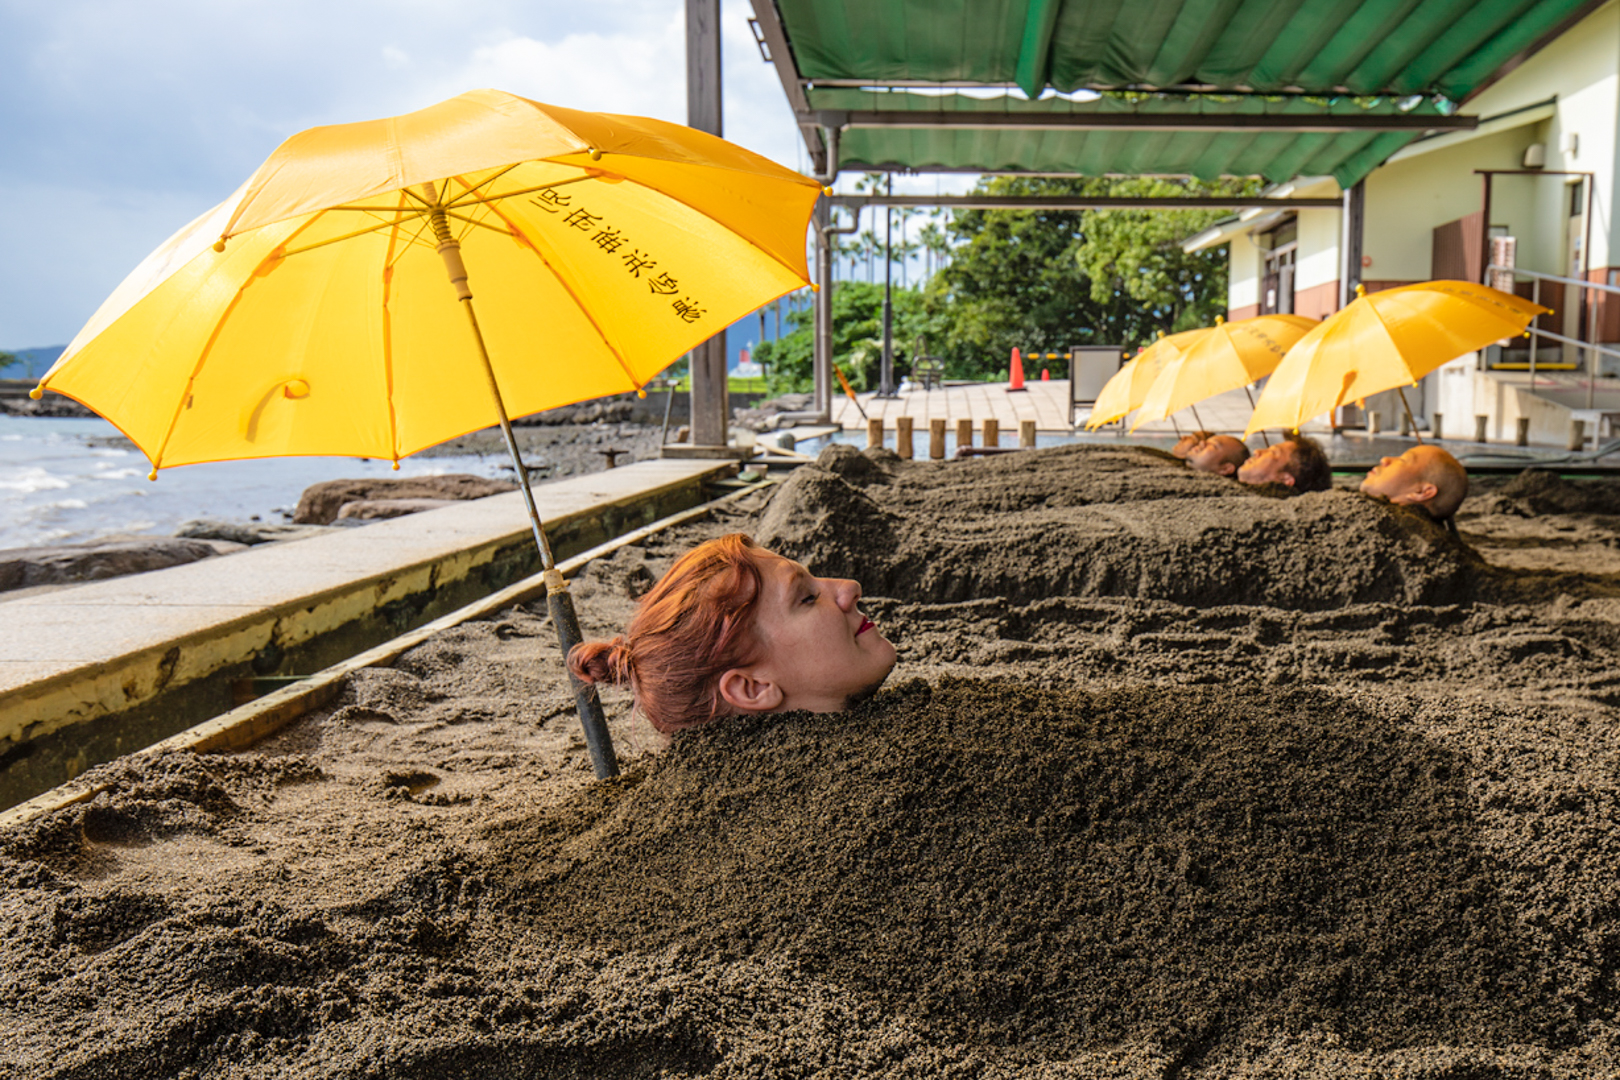 Visitors buried up to their necks in hot sand at the Beppu Beach Sandbox.